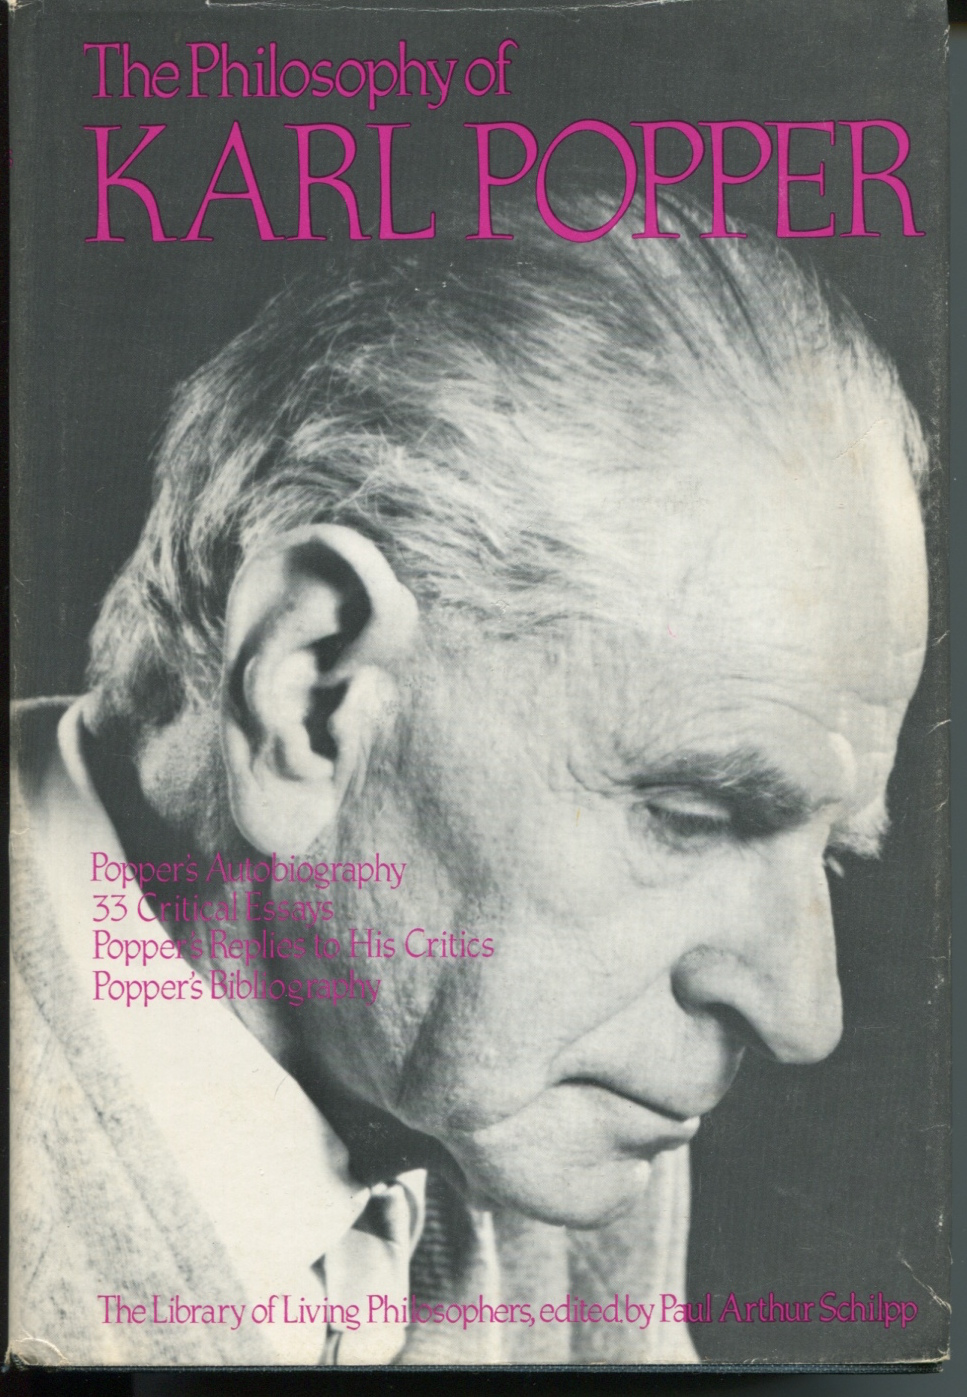 The Philosophy of Karl Popper, Volume XIV, Book Two.